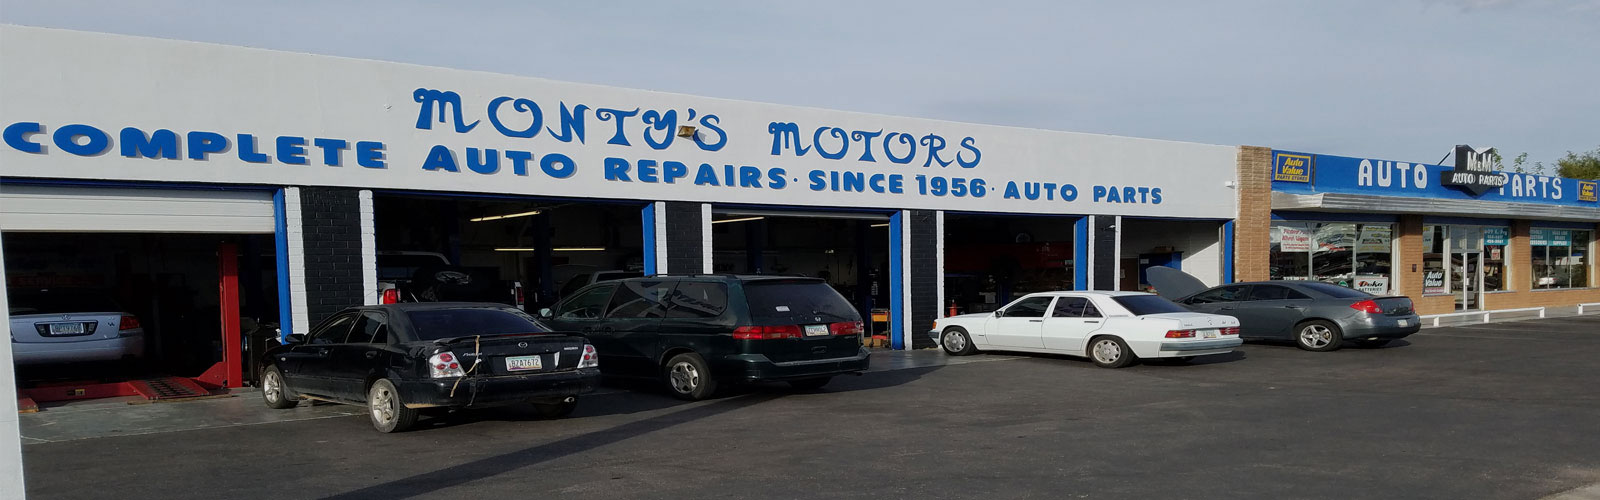 We were the first Auto Repair Shop in 1956 and Remain Your Home of Great Service and Honesty in Sierra Vista.